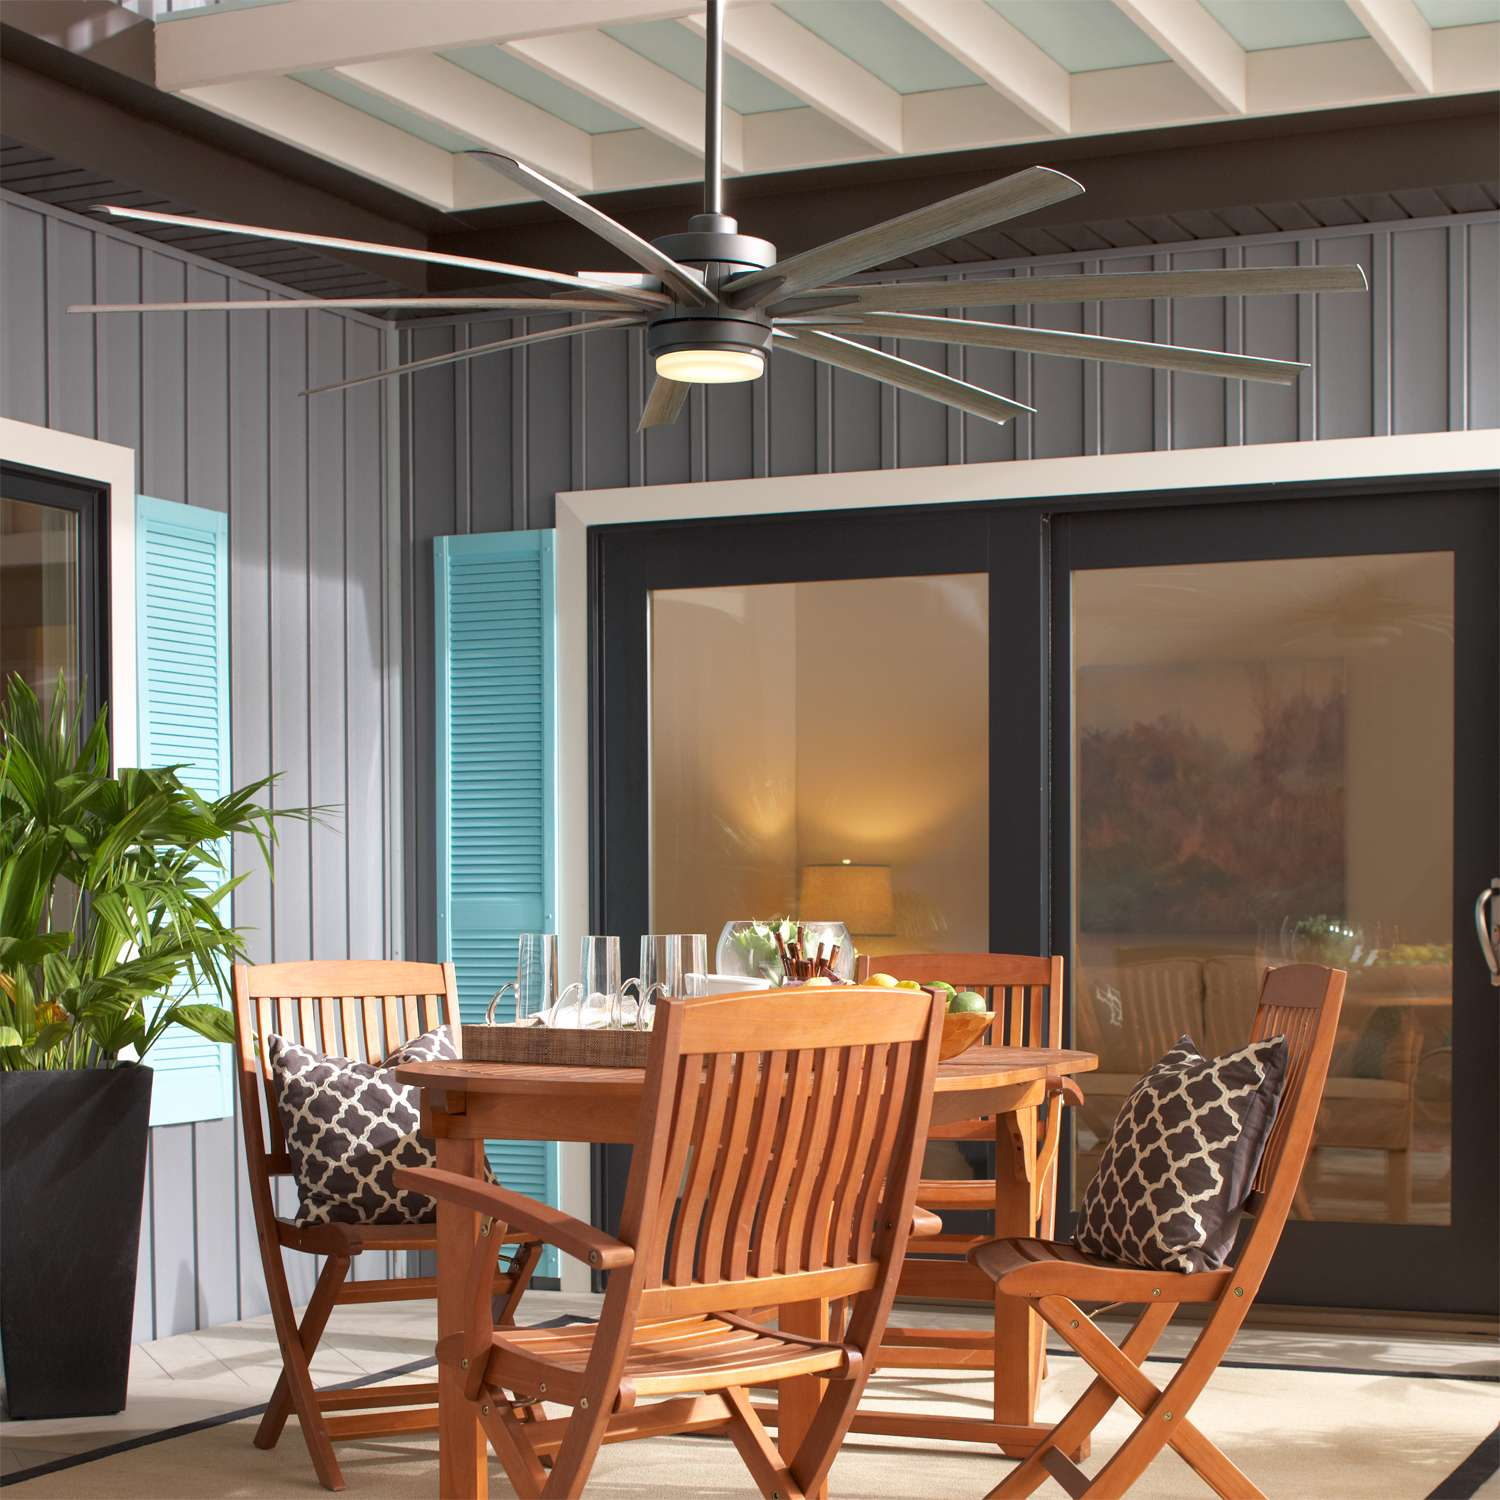 4 Key Questions (And Answers) About Outdoor Ceiling Fans